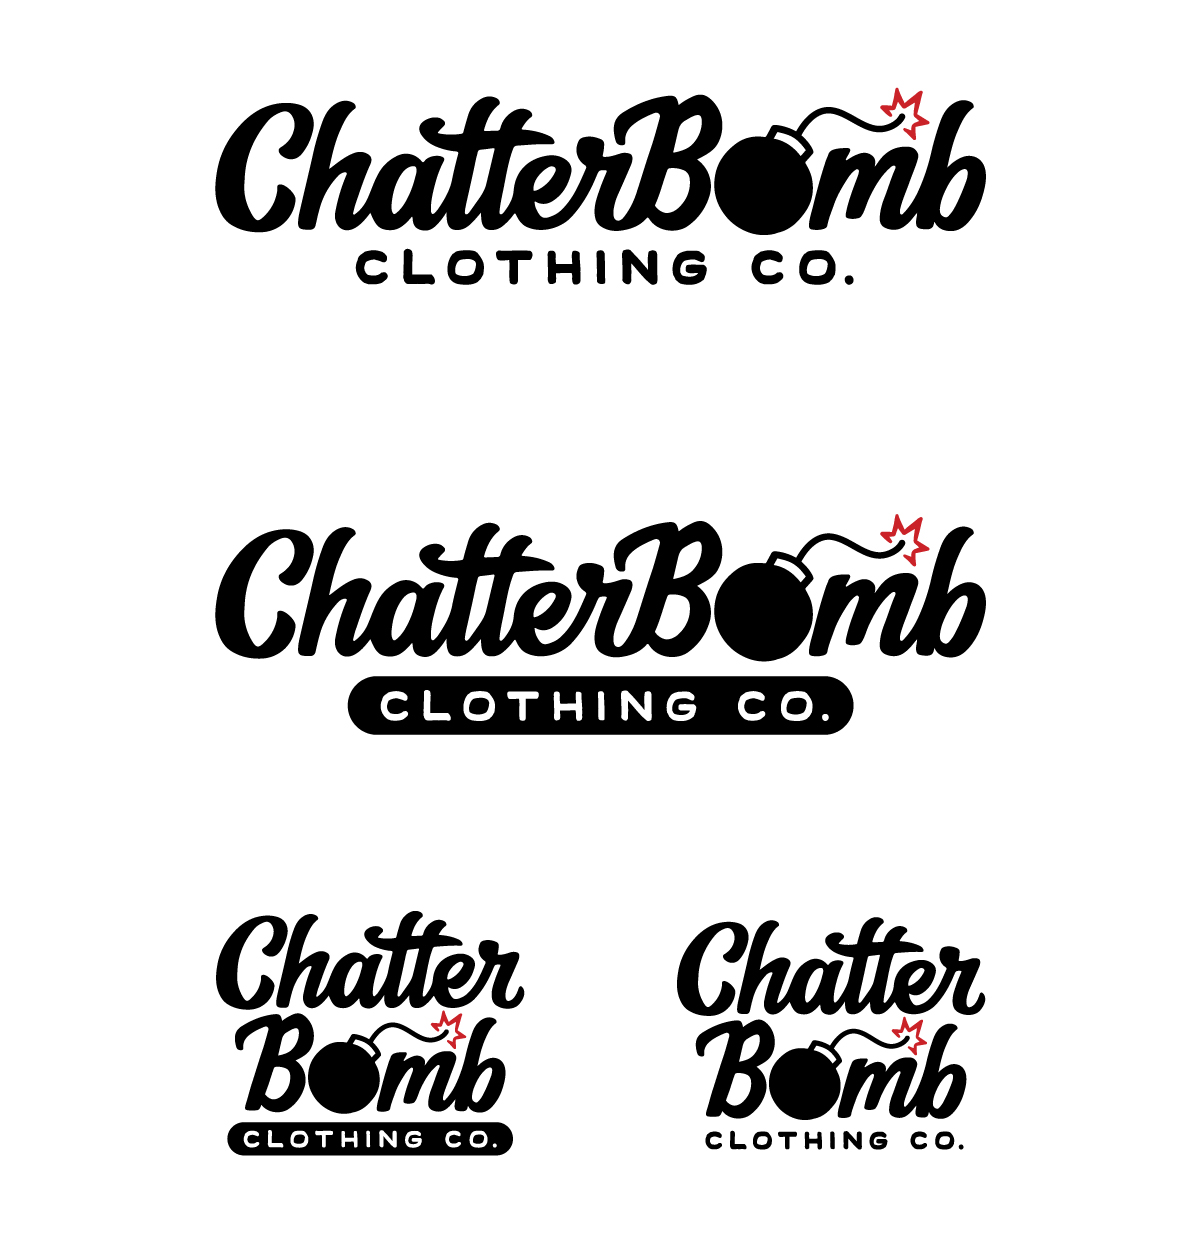 chatterbomb_logos-color-3.jpg